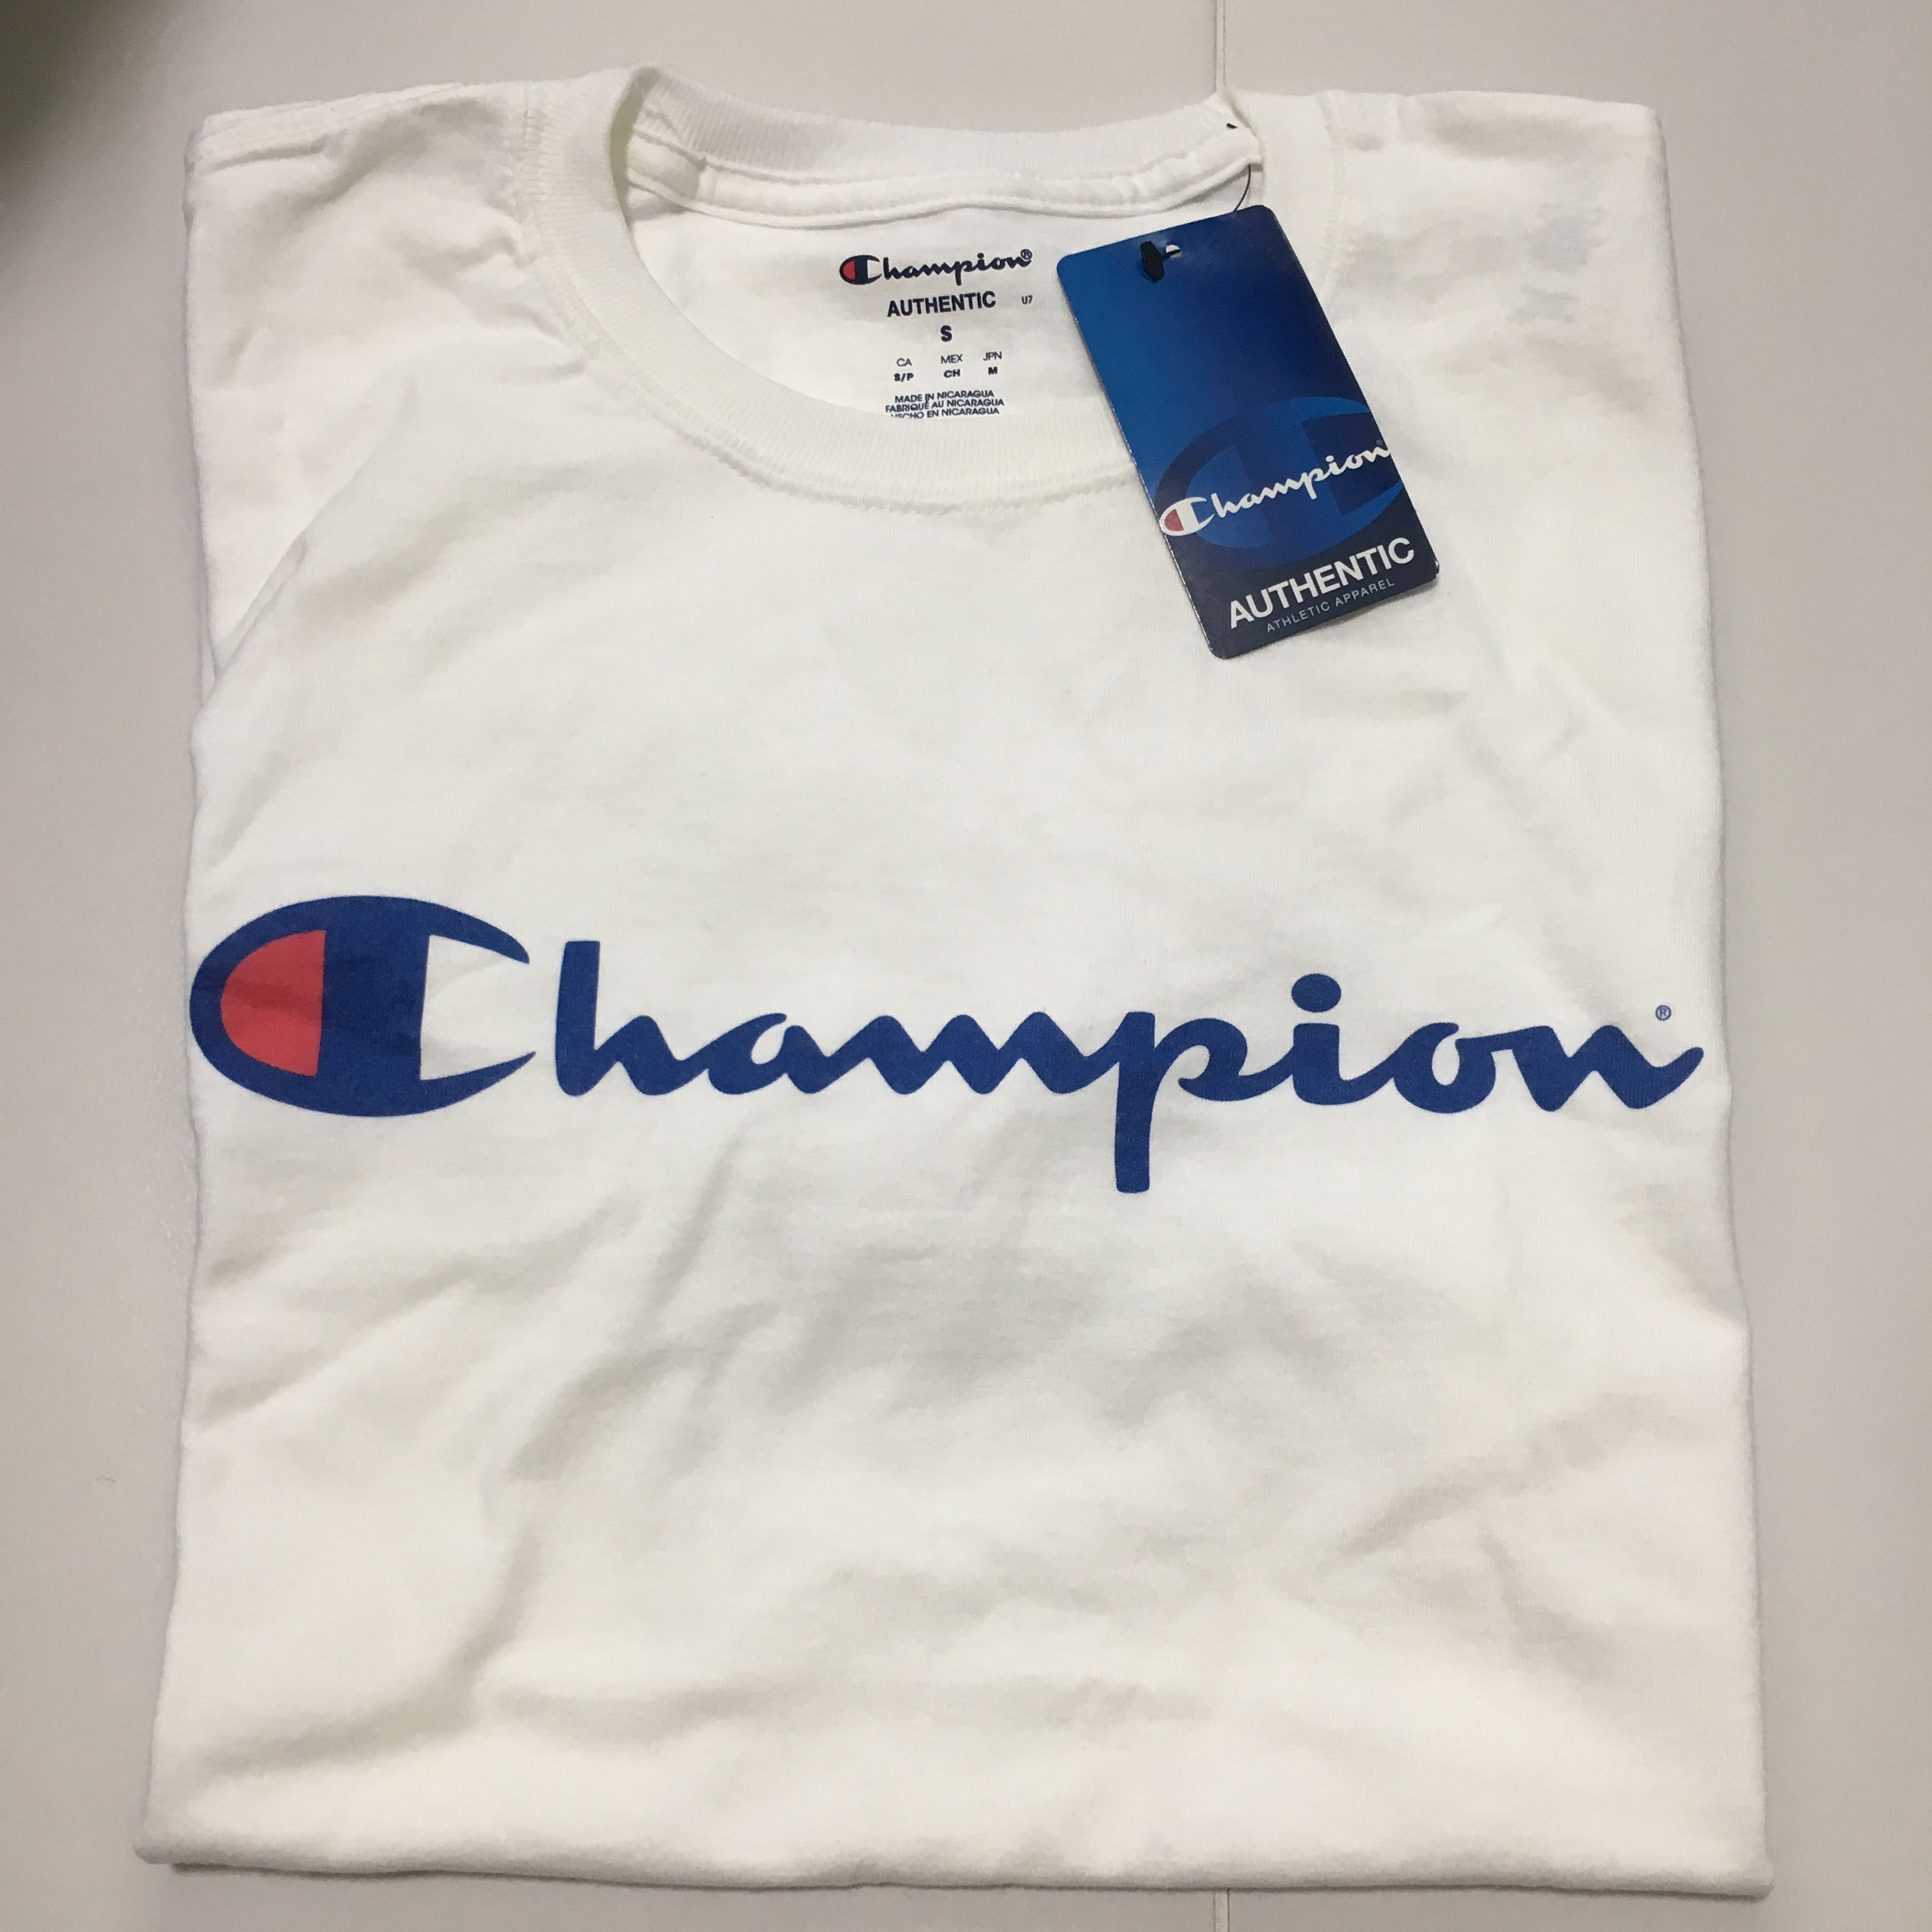 3a8ecaec [Instock] Champion T Shirts, Men's Fashion, Clothes, Tops on Carousell